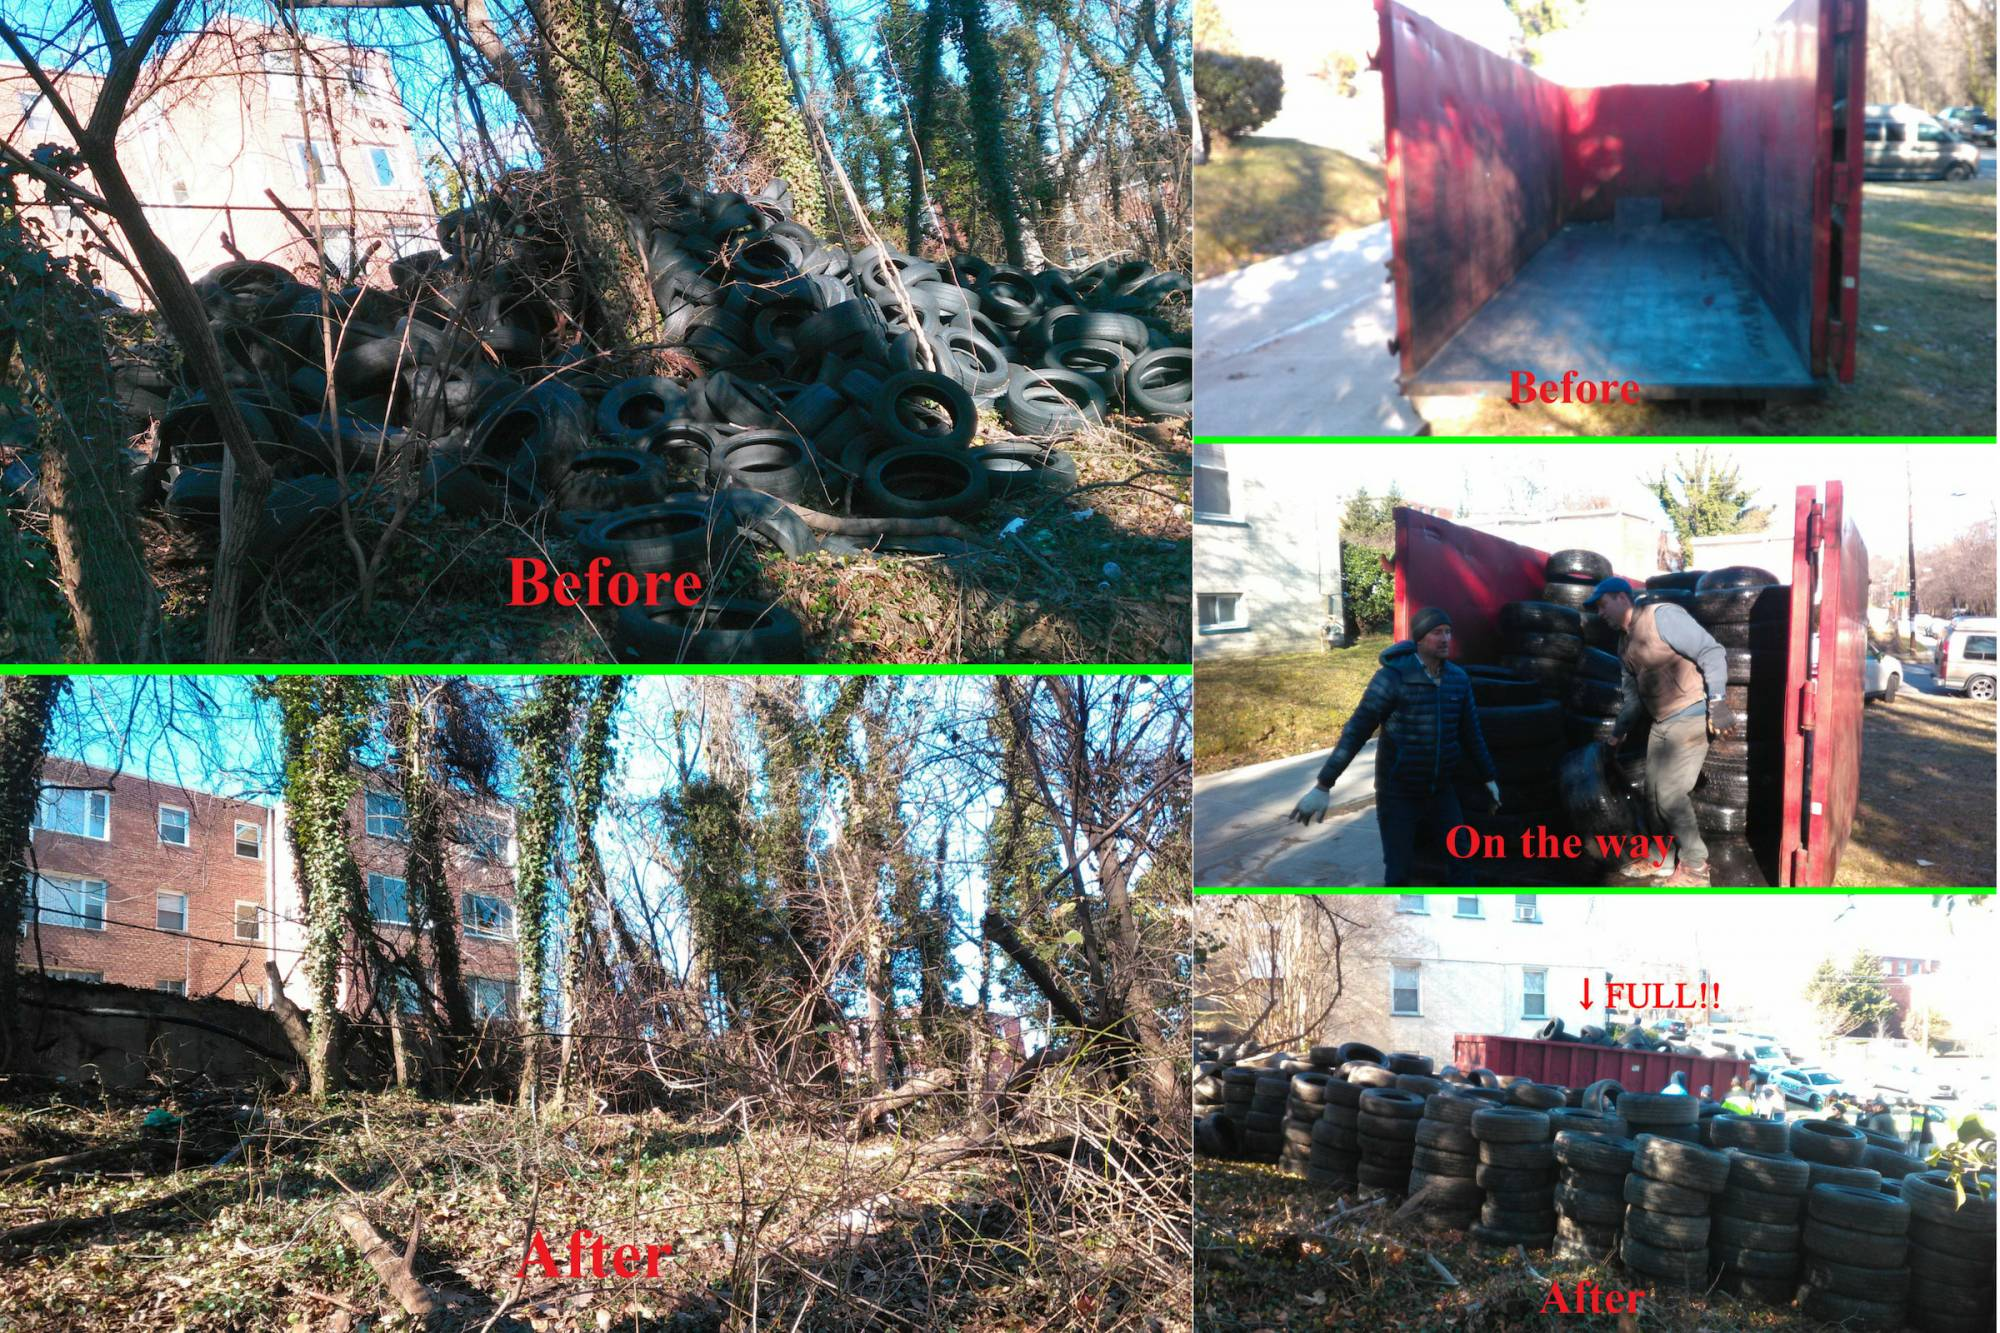 Anacostia Watershed Society teams with Mayor's Office of a Clean City and MPD to clean 492 tires from Fort Dupont